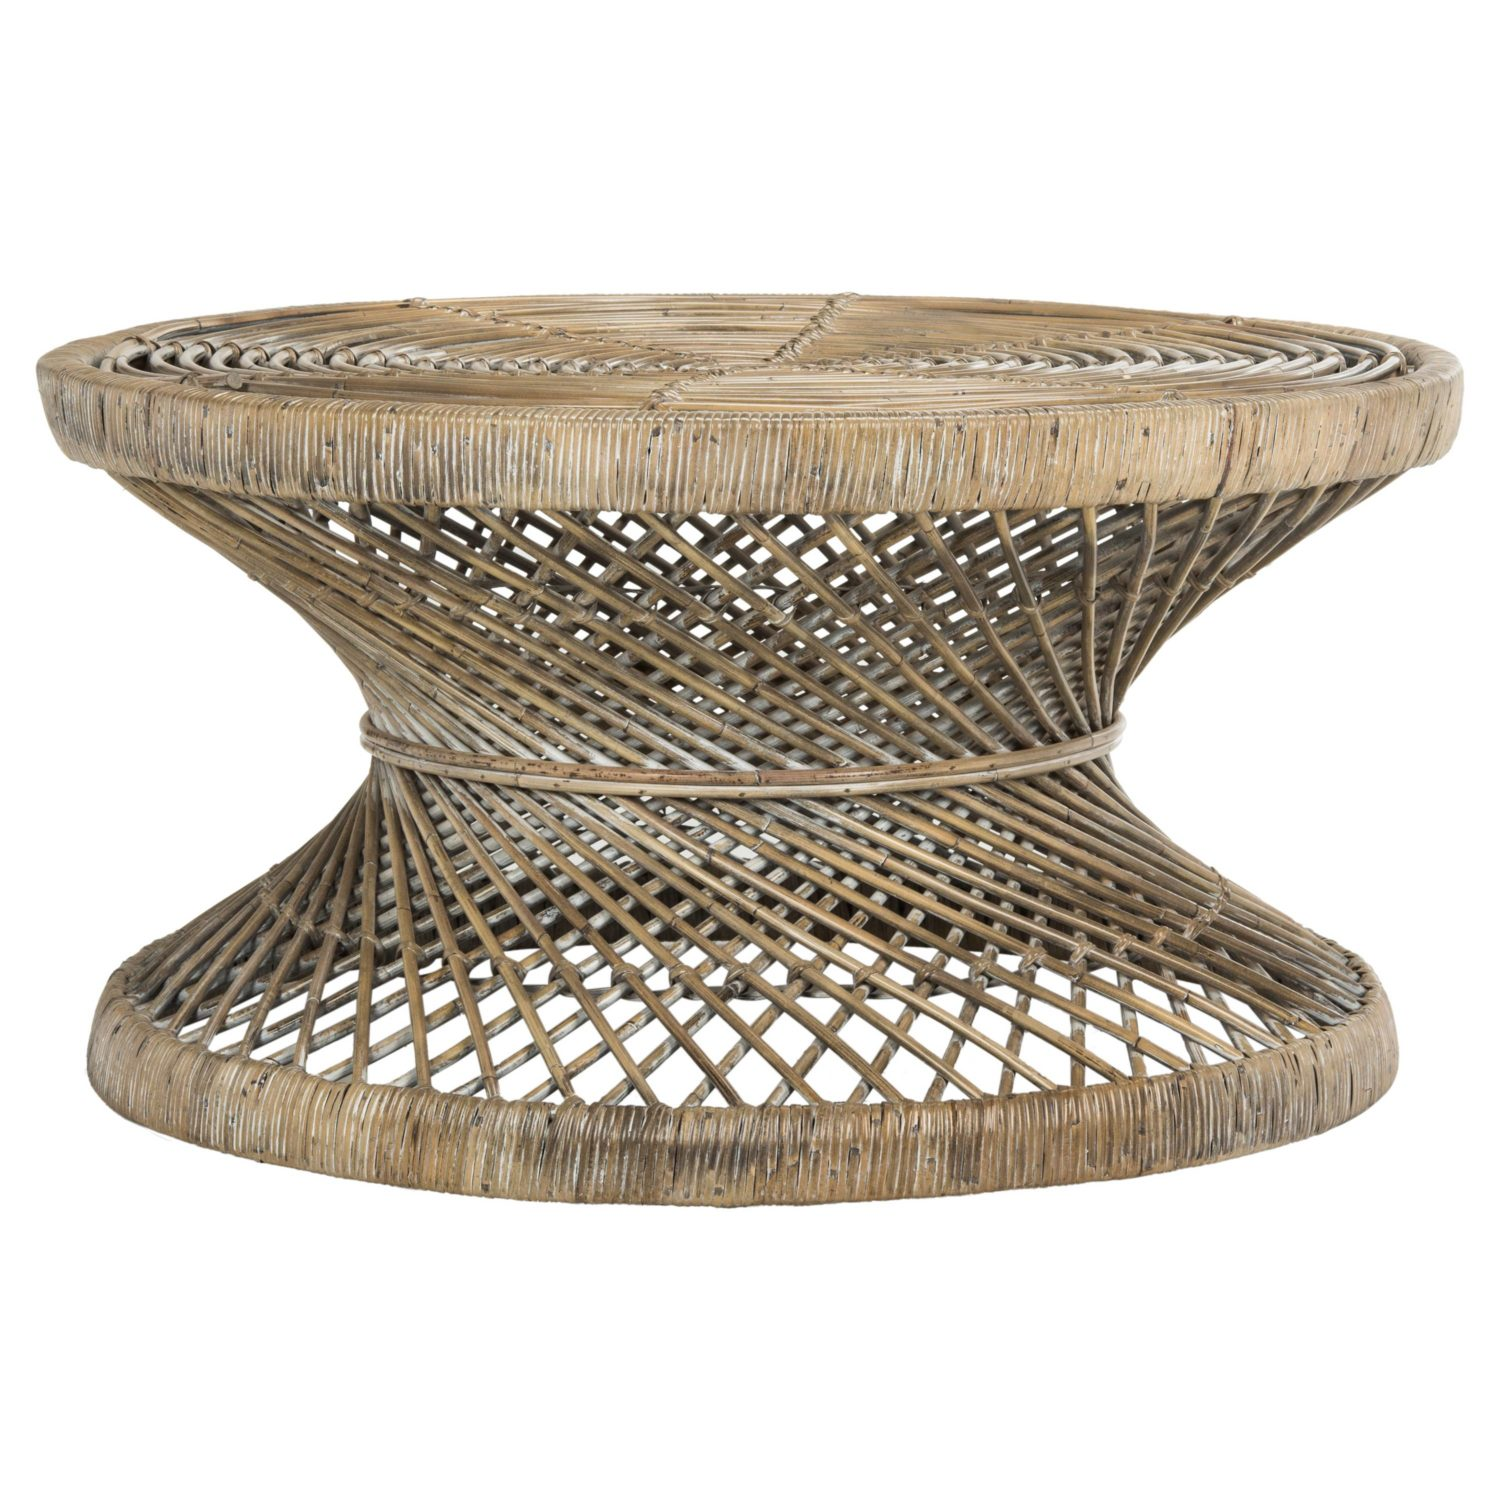 Rattan Round Coffee Table Eclectic Goods Eclectic Goods